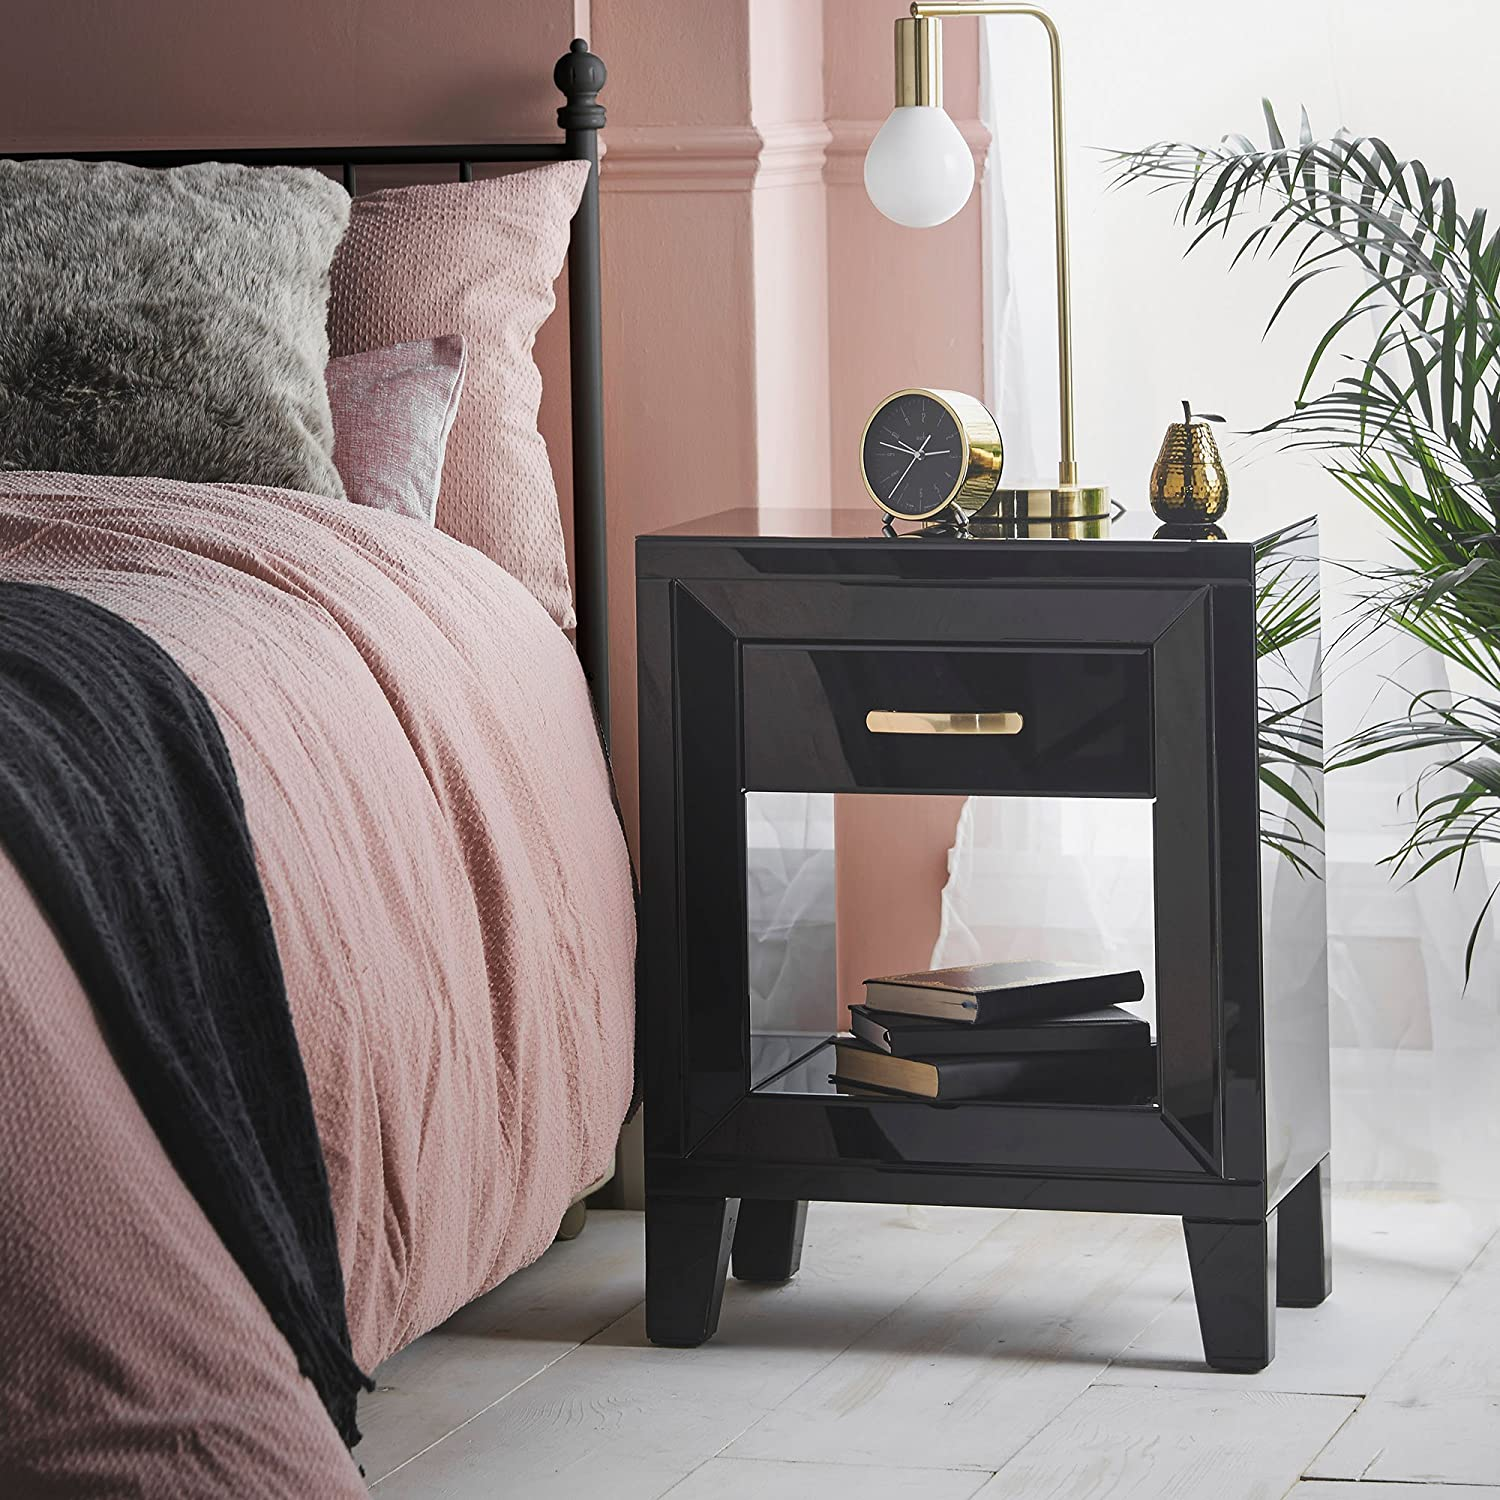 Beautify Black Mirrored Bedside Table Nightstand with Single Drawer & Cut Out Open Centre Shelf